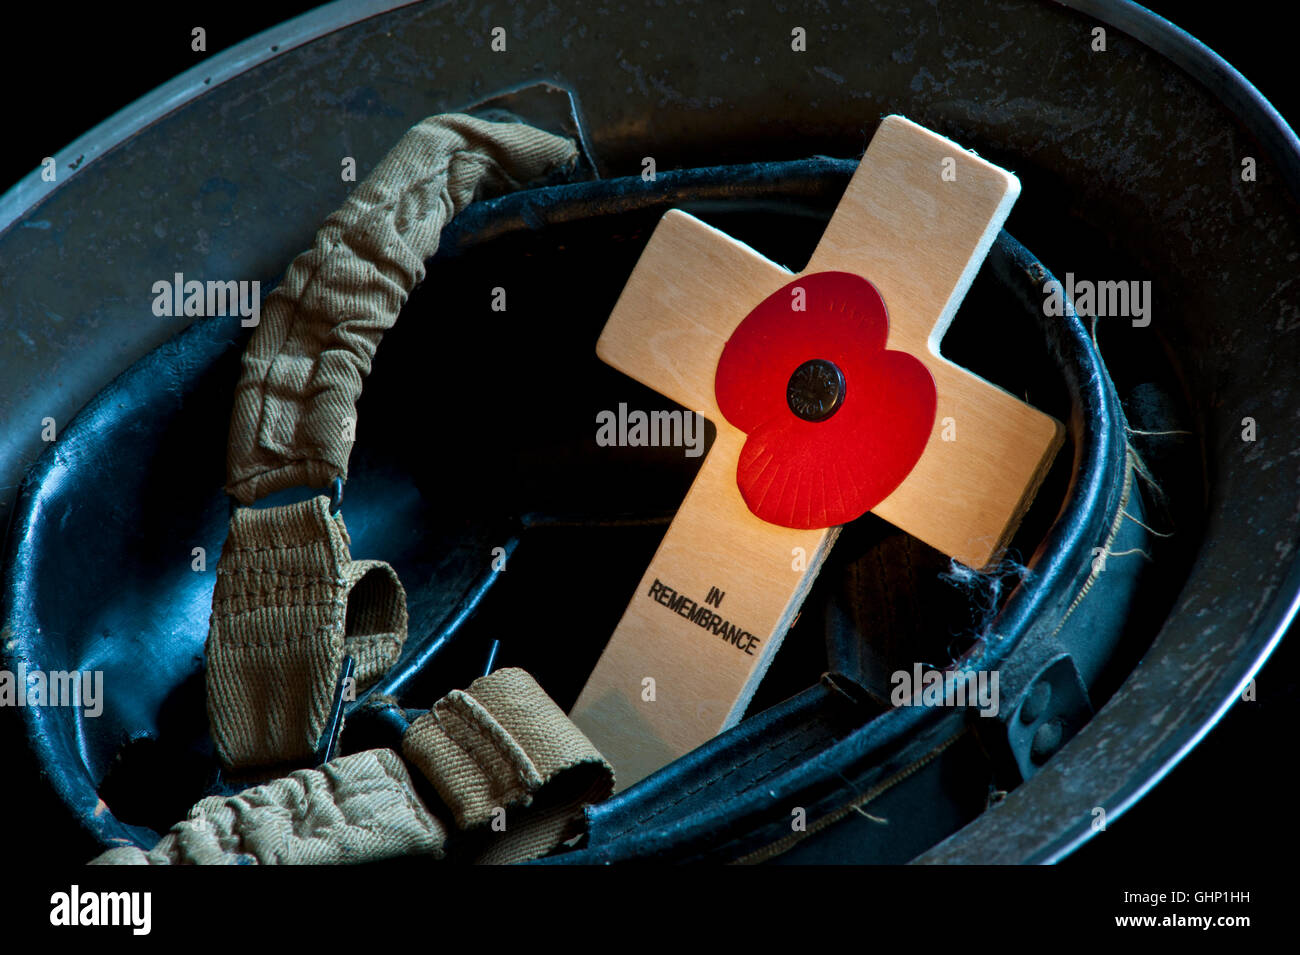 REMEMBRANCE POPPY CROSS Evocative study of WW2 original 1939 army soldier tommy military helmet with Remembrance - Stock Image